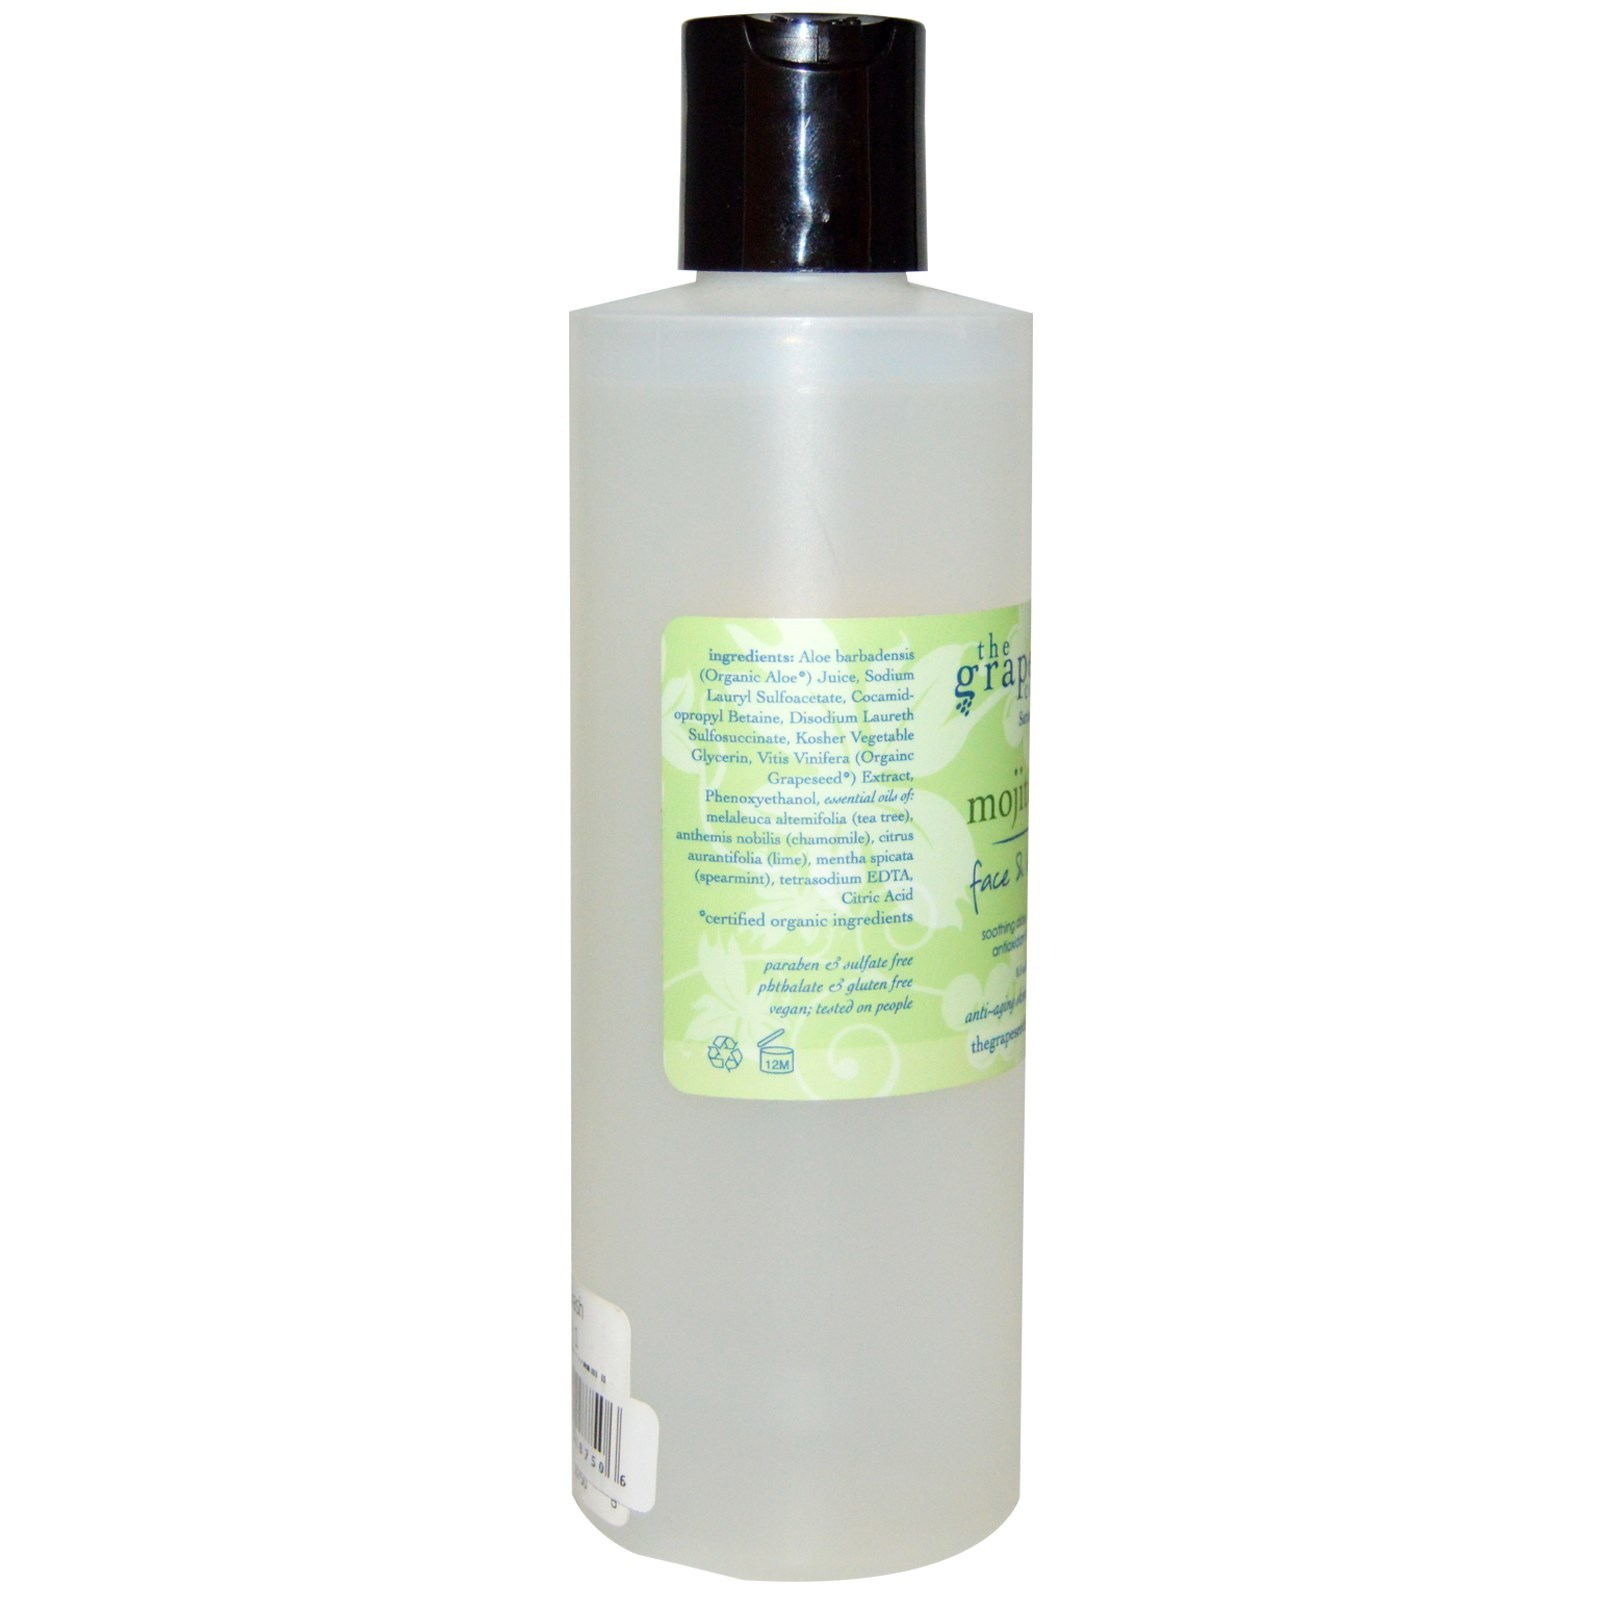 Http List Item Direct From Germany Body Lotion Pigeon Kids Hair Wash Liquid Orange Mango Pump 400ml 567154191 00g 0 W St G